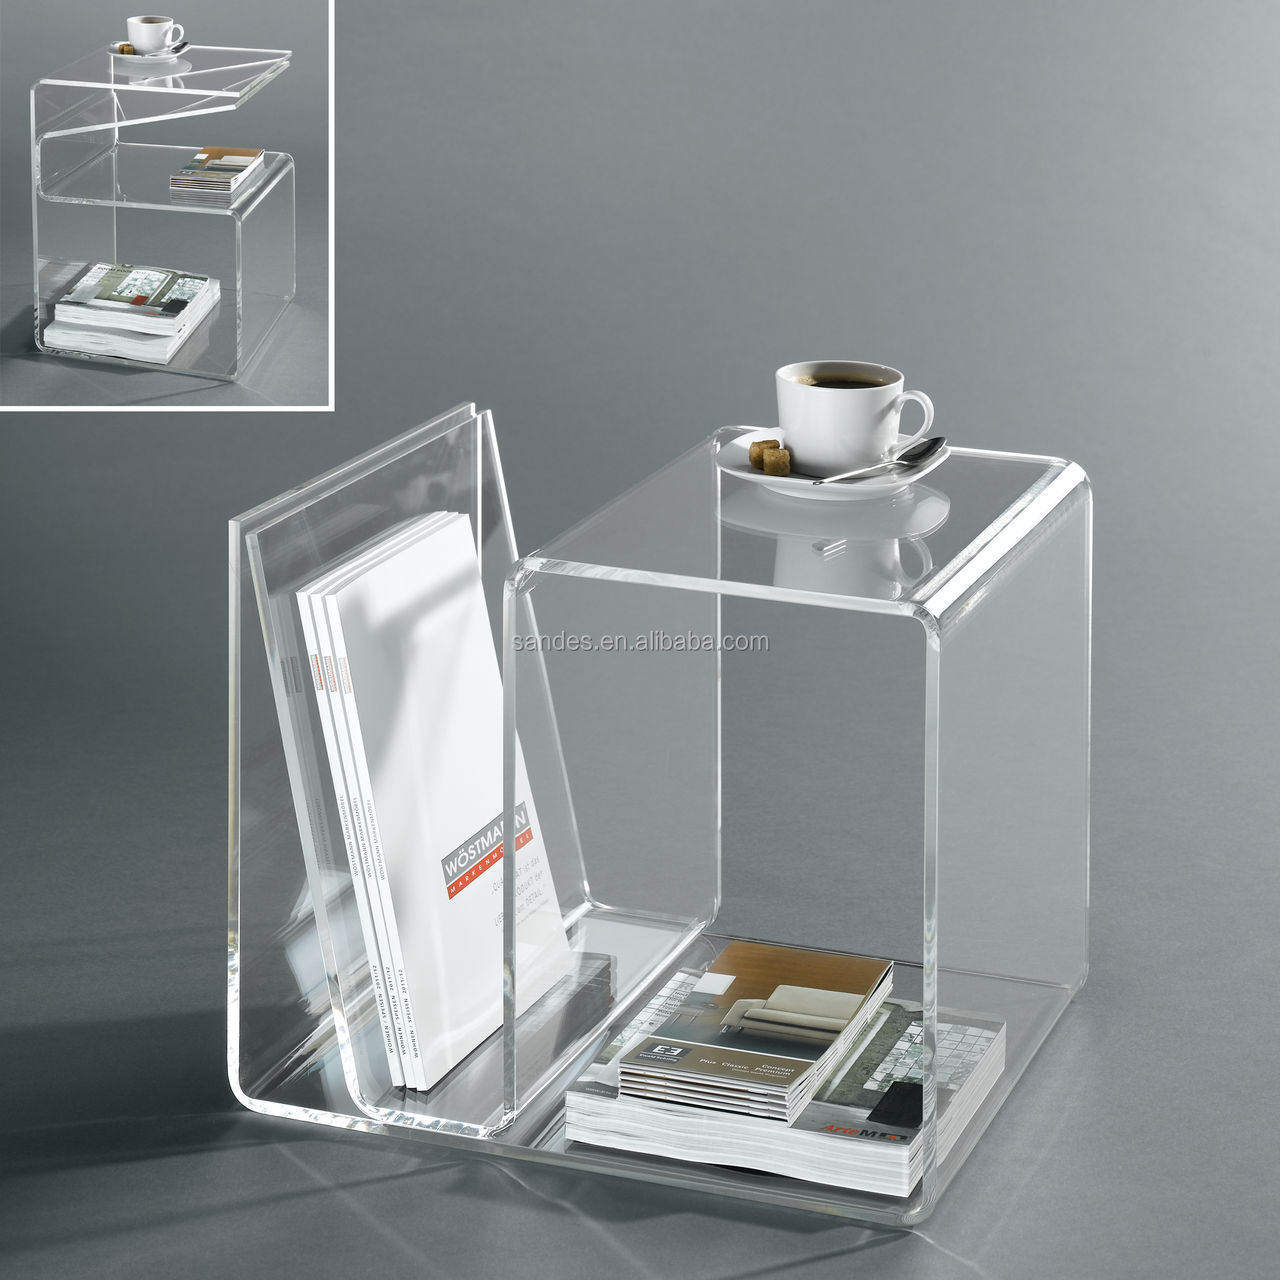 Clear Plastic Side Tables, Clear Plastic Side Tables Suppliers And  Manufacturers At Alibaba.com